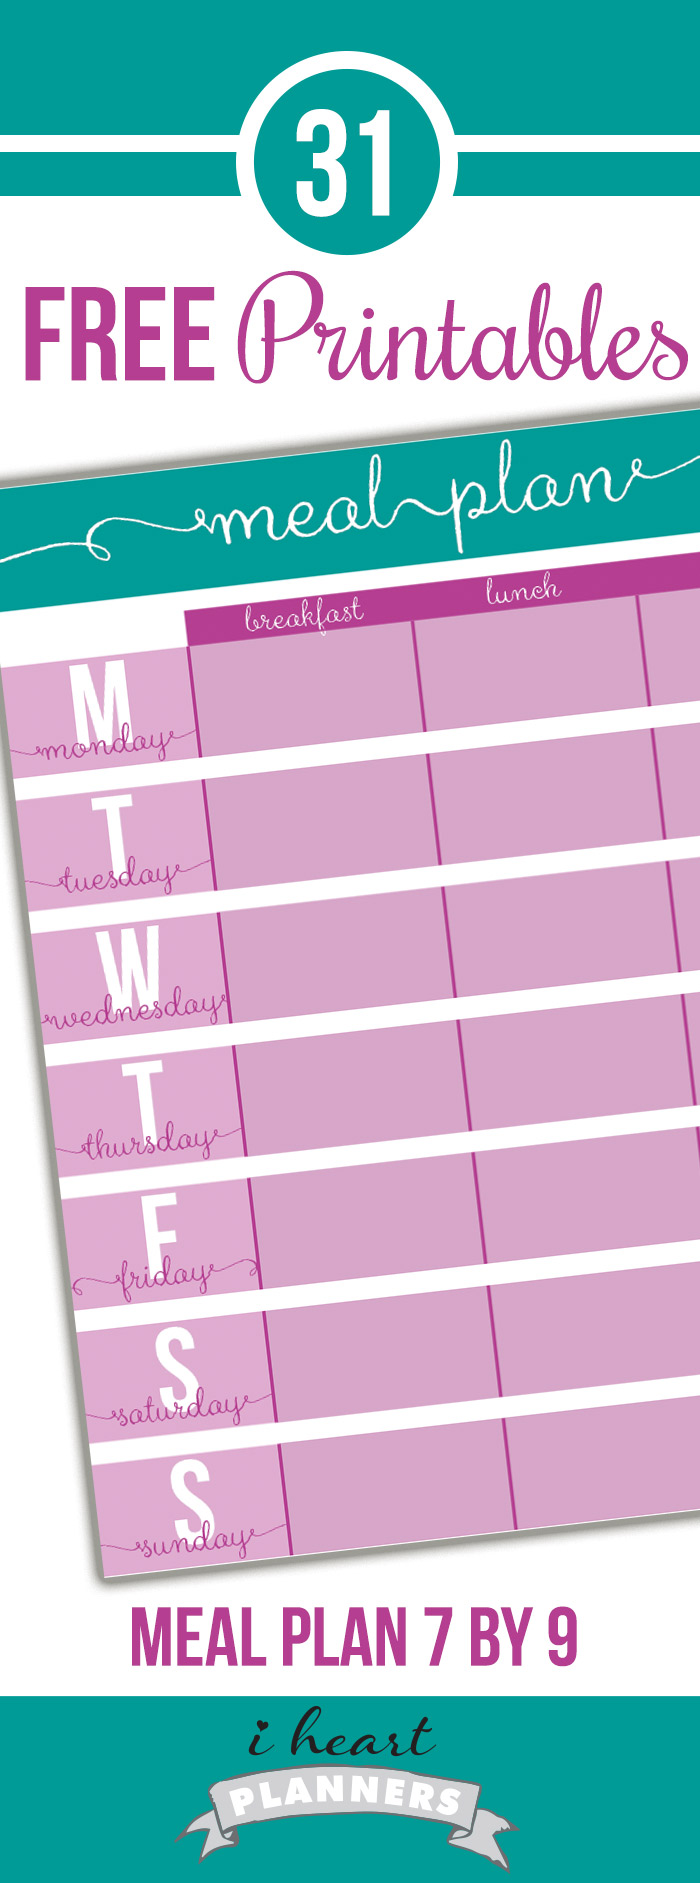 free printable menu planner to go in life planners like erin condren or plum paper